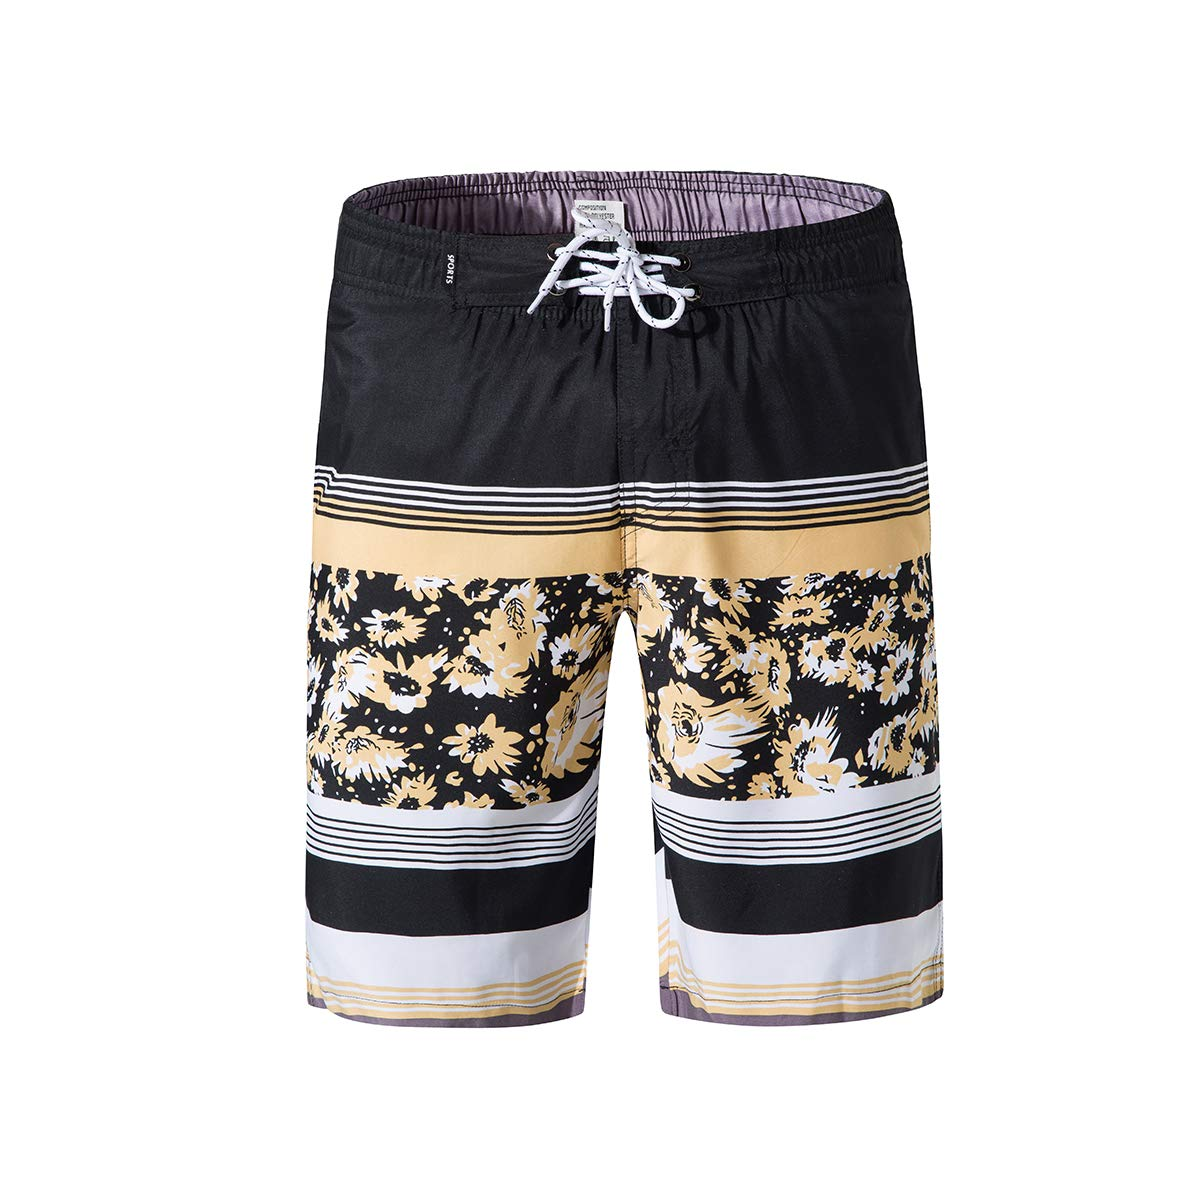 TENMET Men/'s Quick Dry Floral and Strips Board Shorts with Zipper Pockets Beach Swim Trunks Knee Length